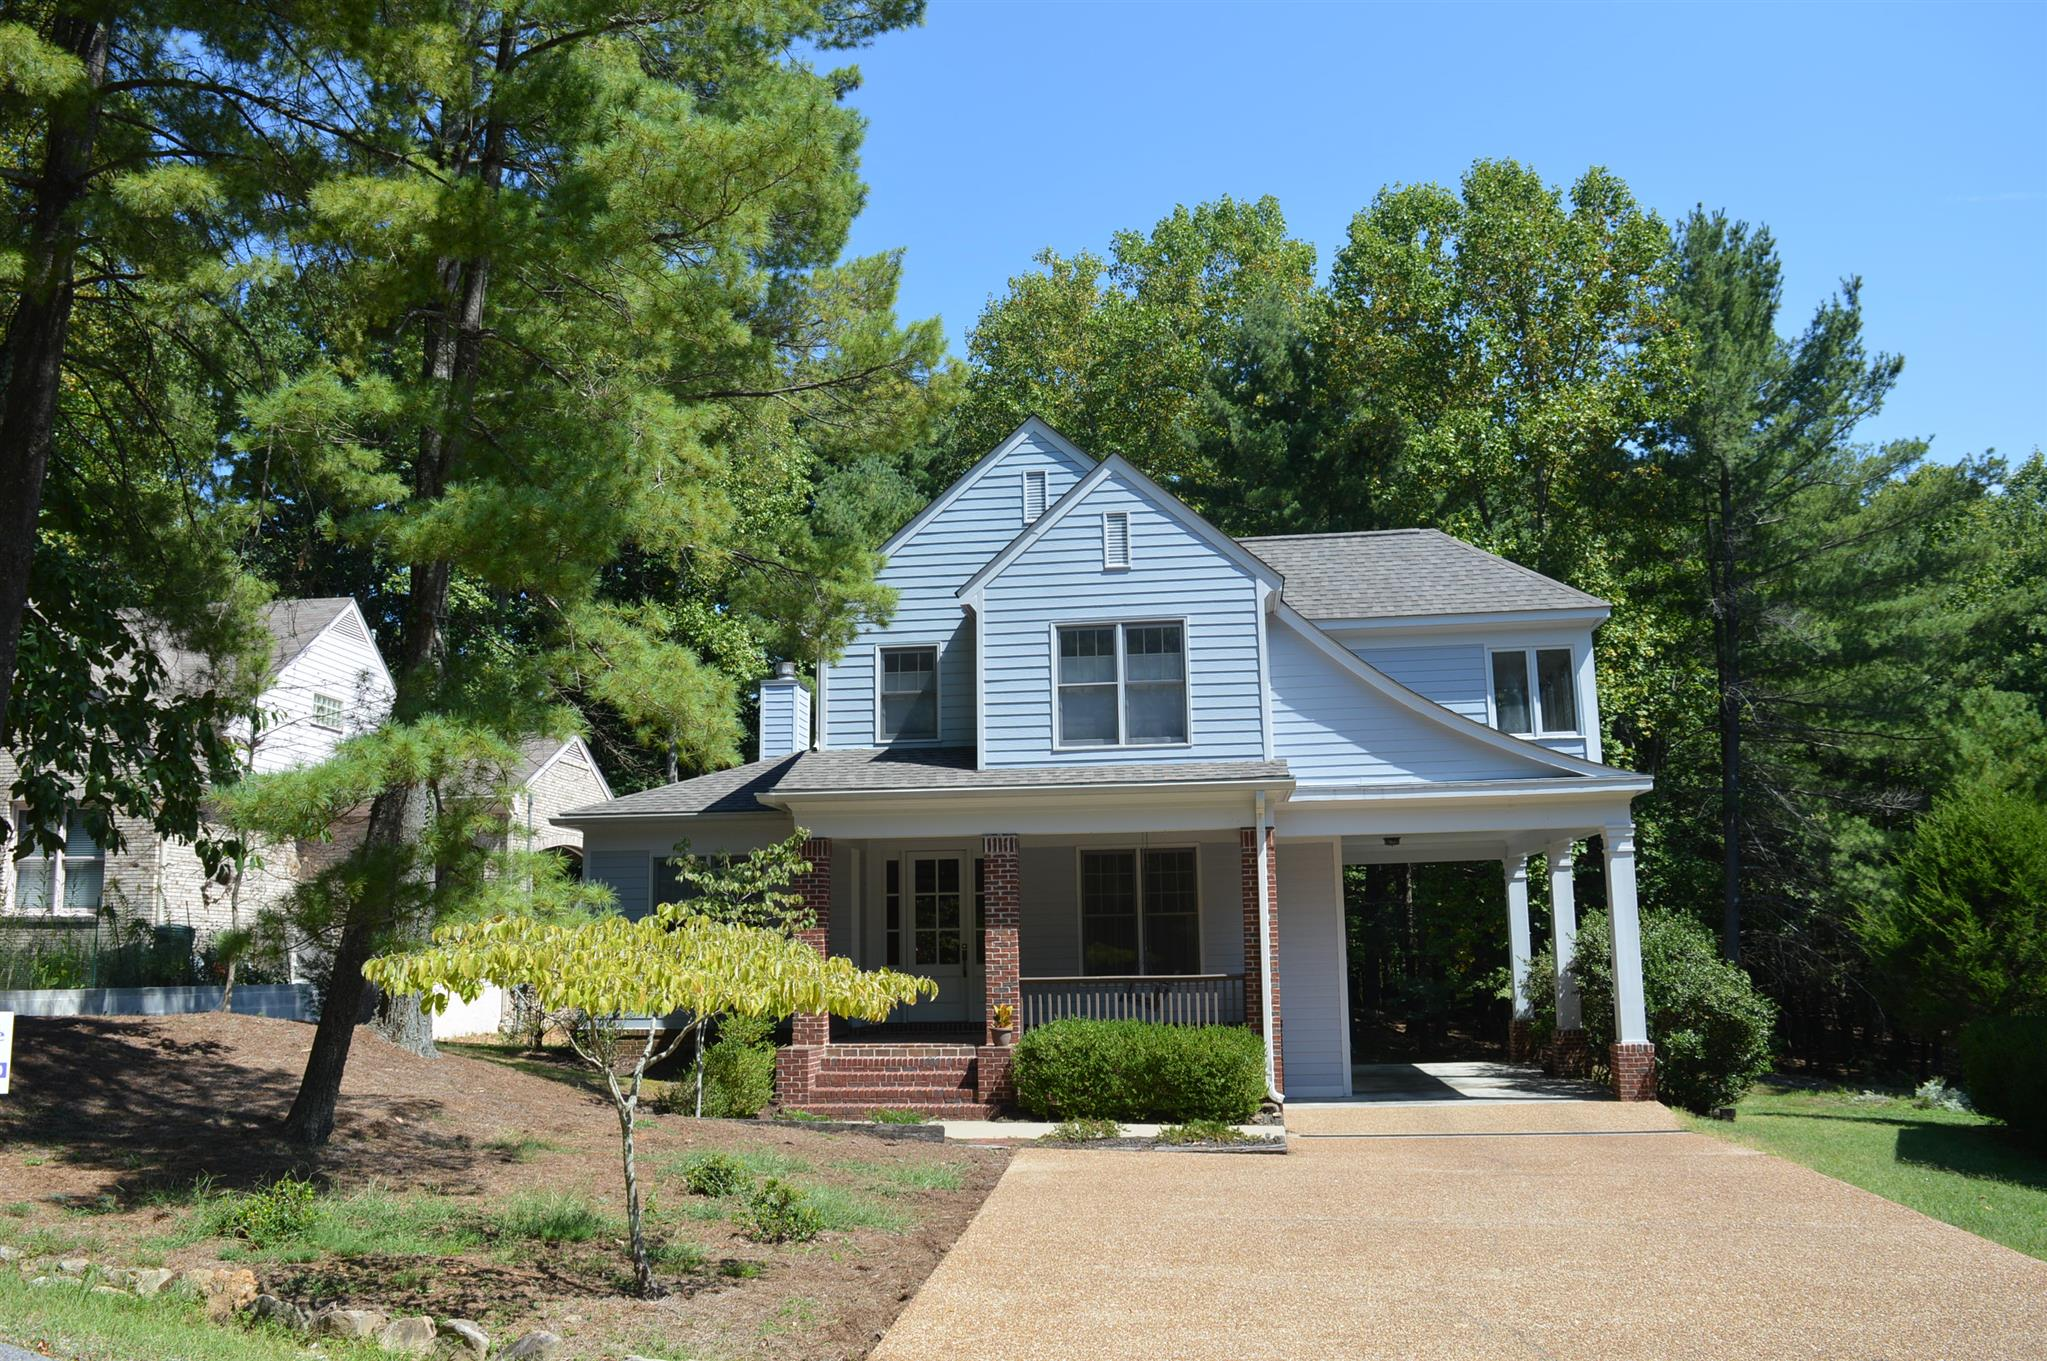 277 Wiggins Creek Dr, Sewanee, TN 37375